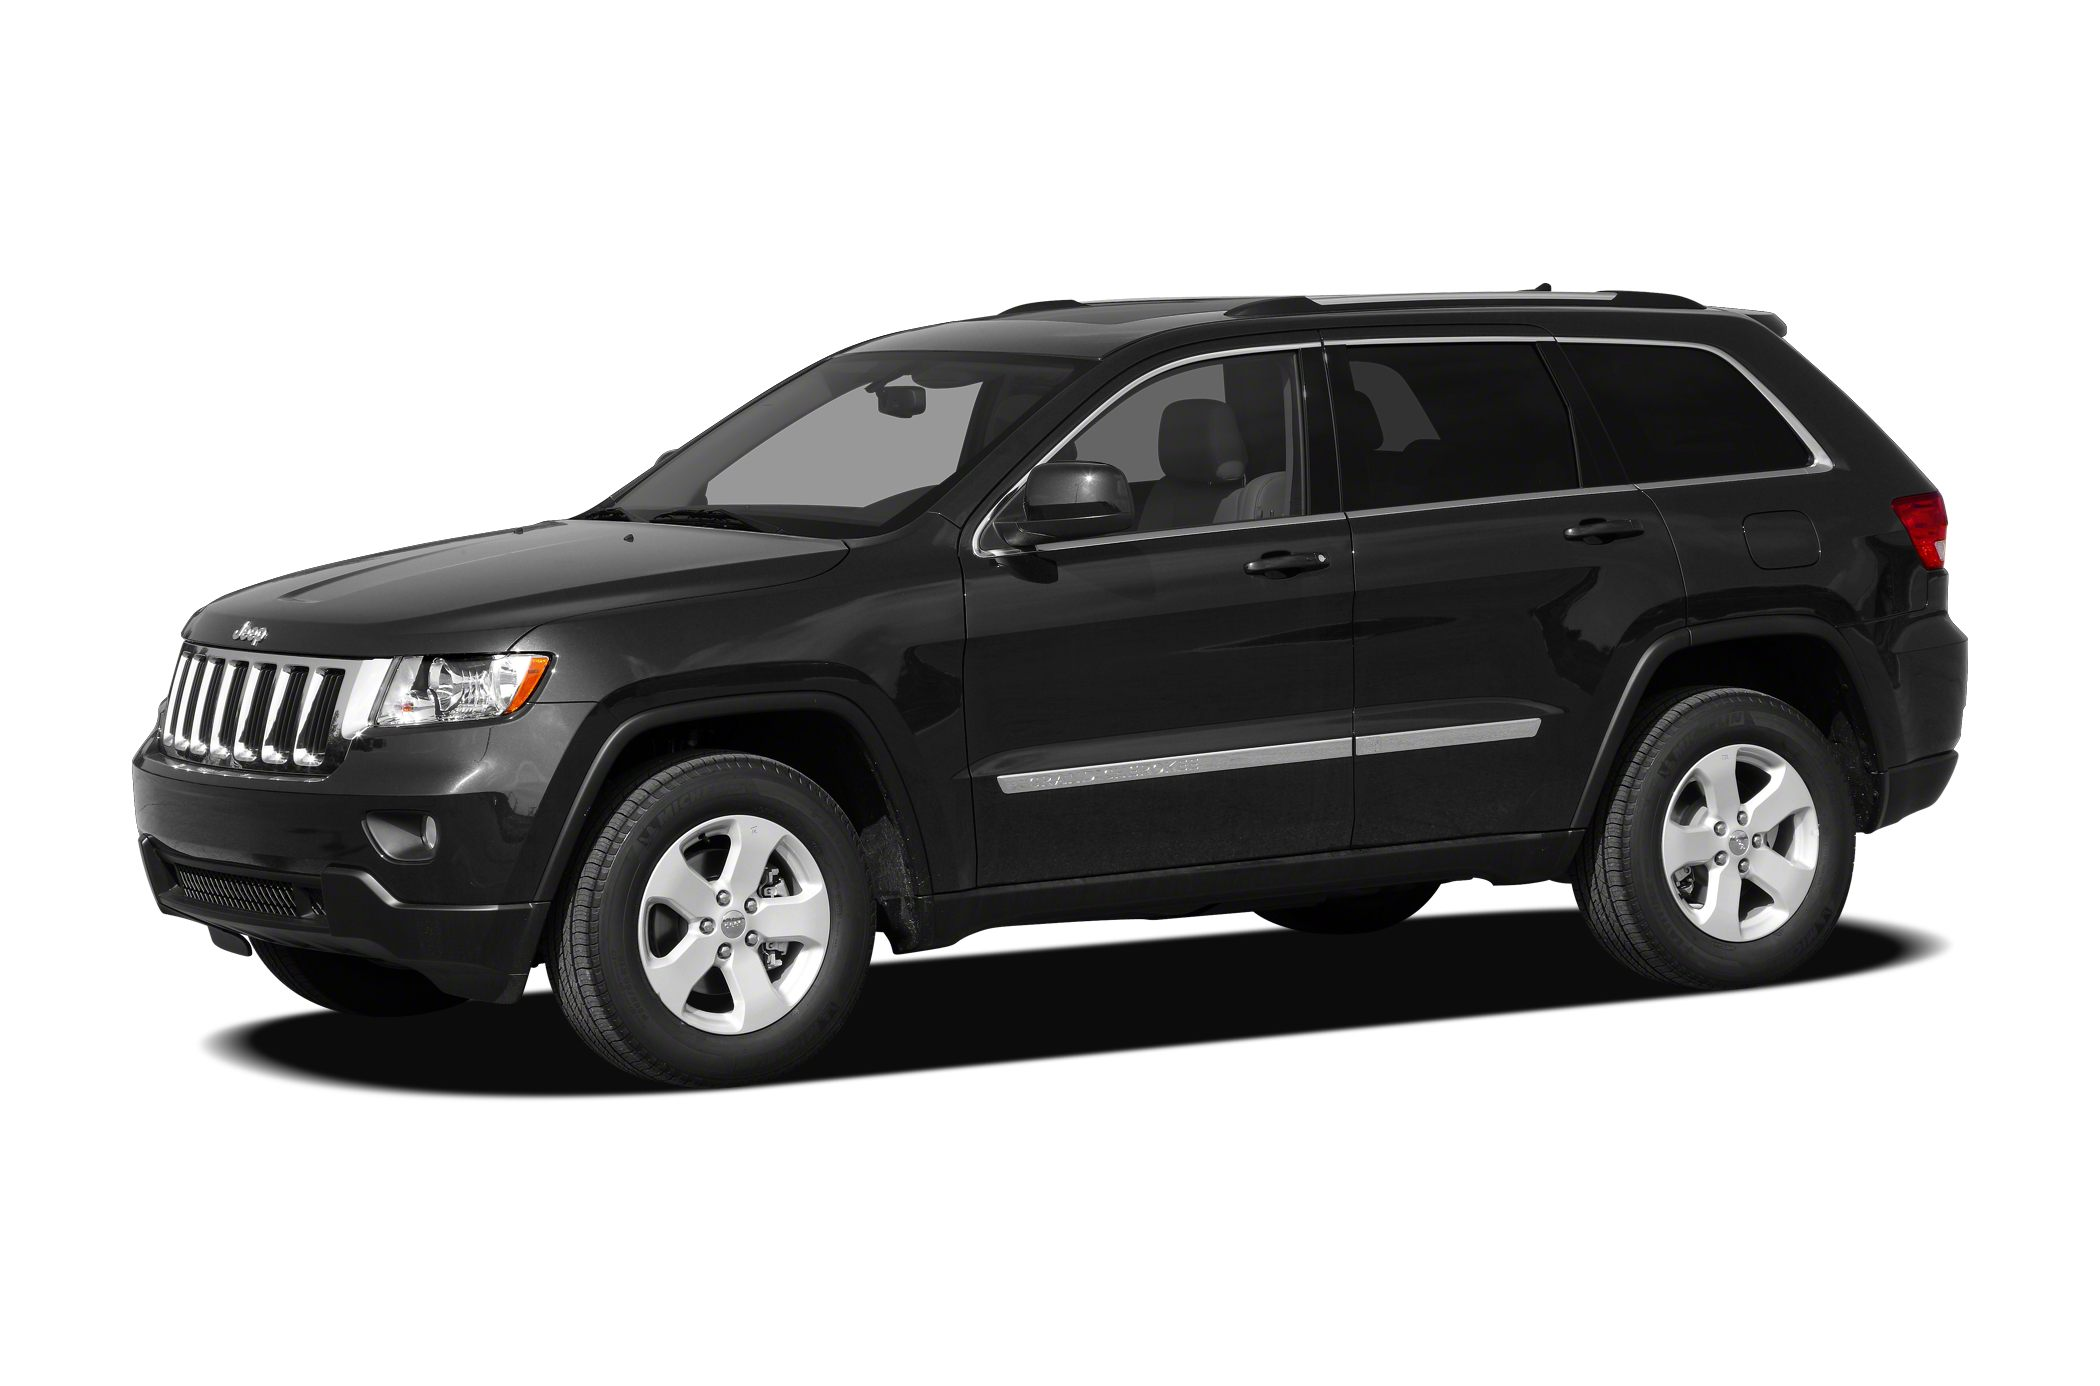 2012 Jeep Grand Cherokee Laredo SUV for sale in Anniston for $27,190 with 42,384 miles.